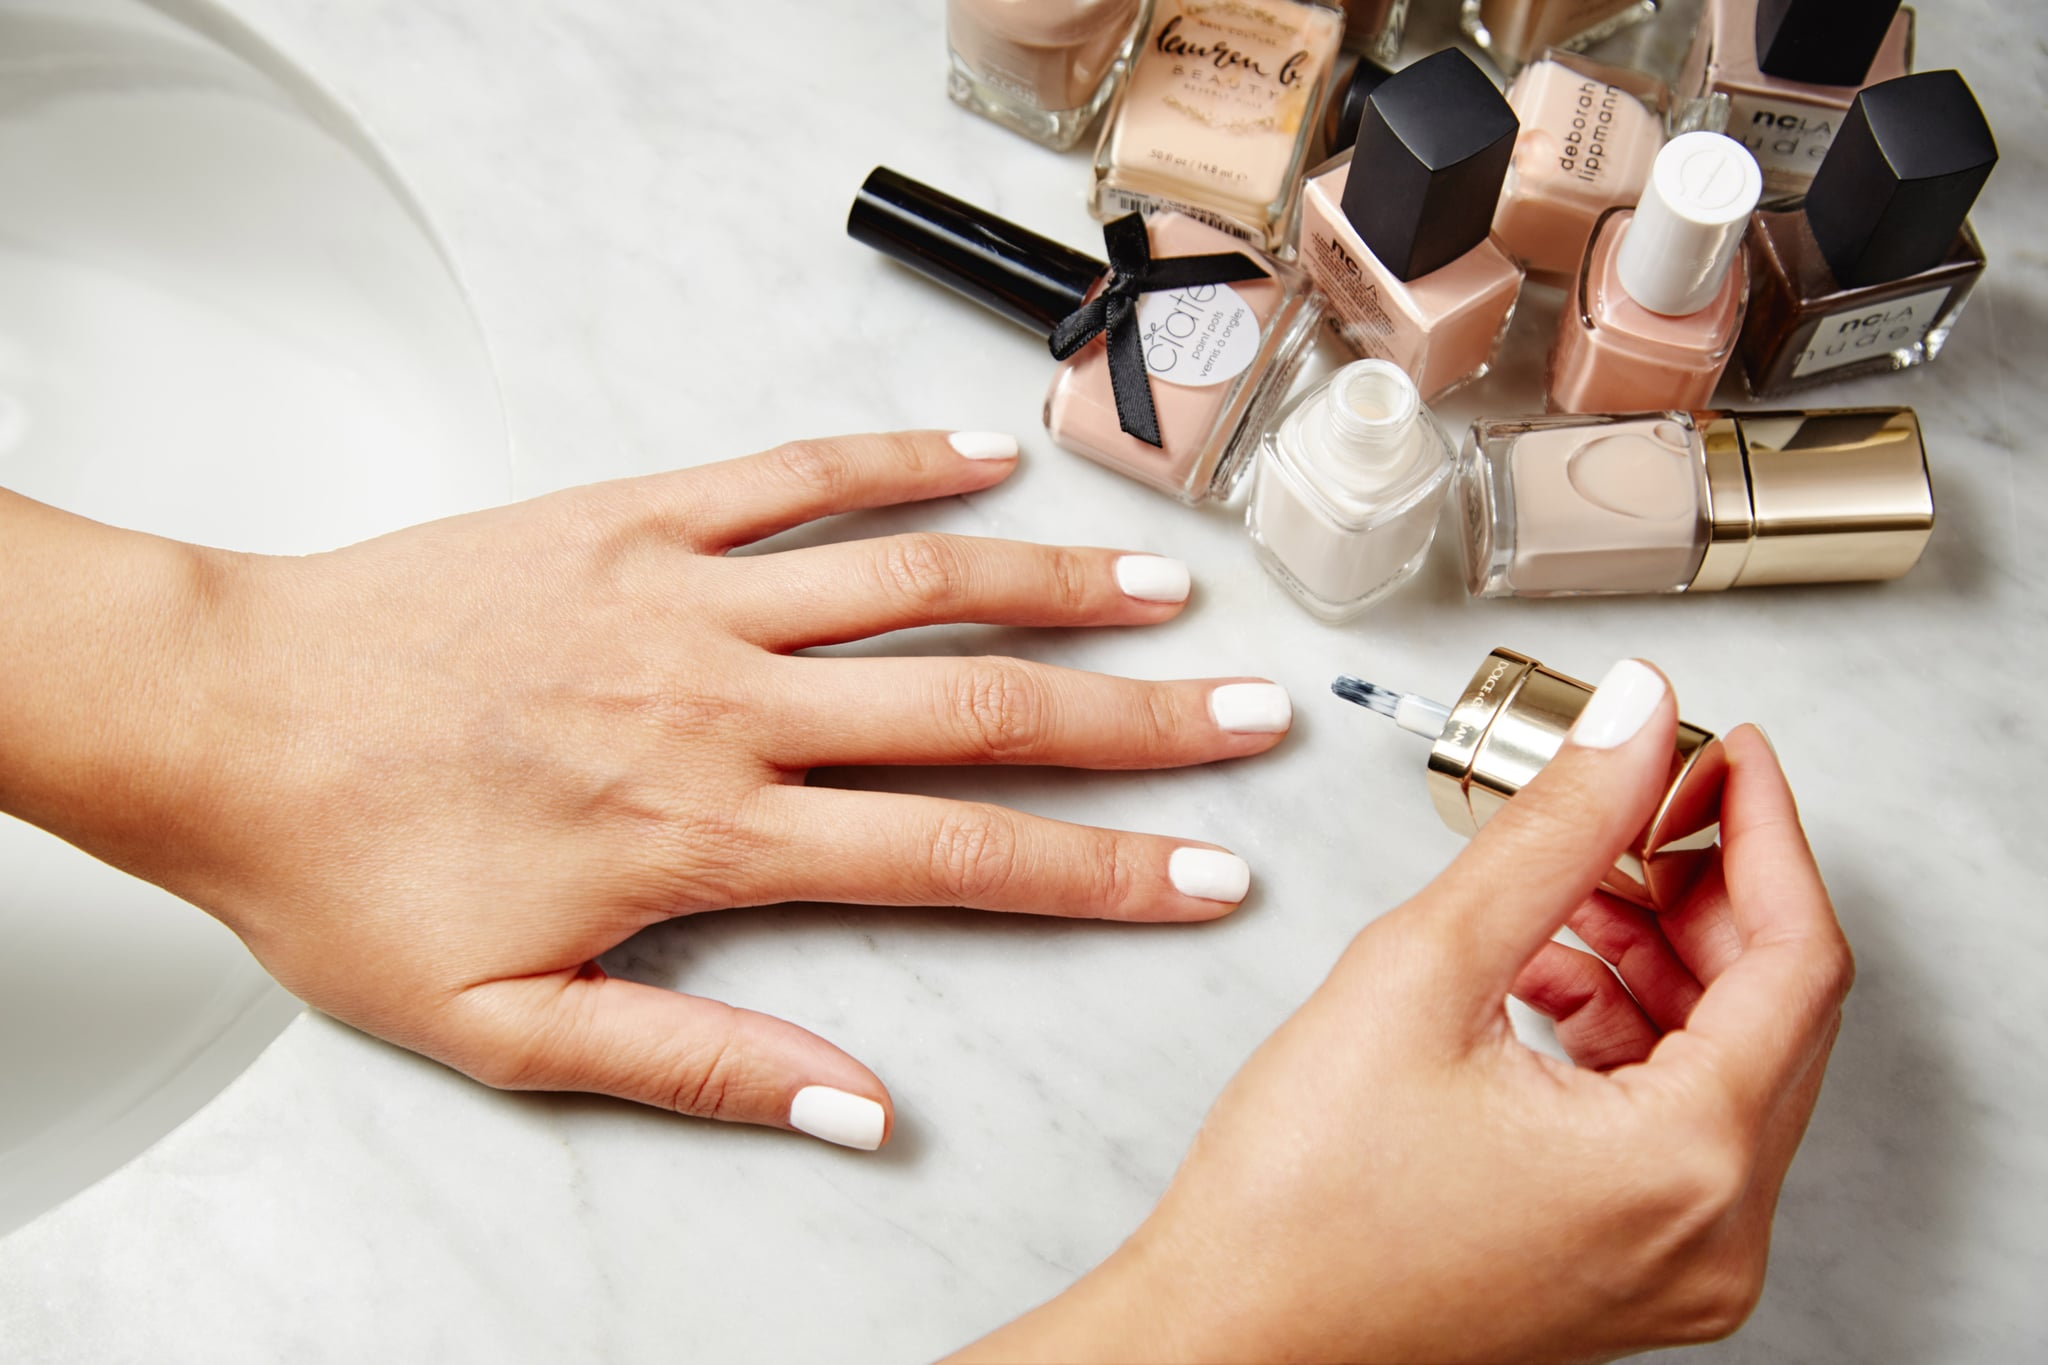 Why Is the Skin Around My Nails Tearing? | POPSUGAR Beauty Australia